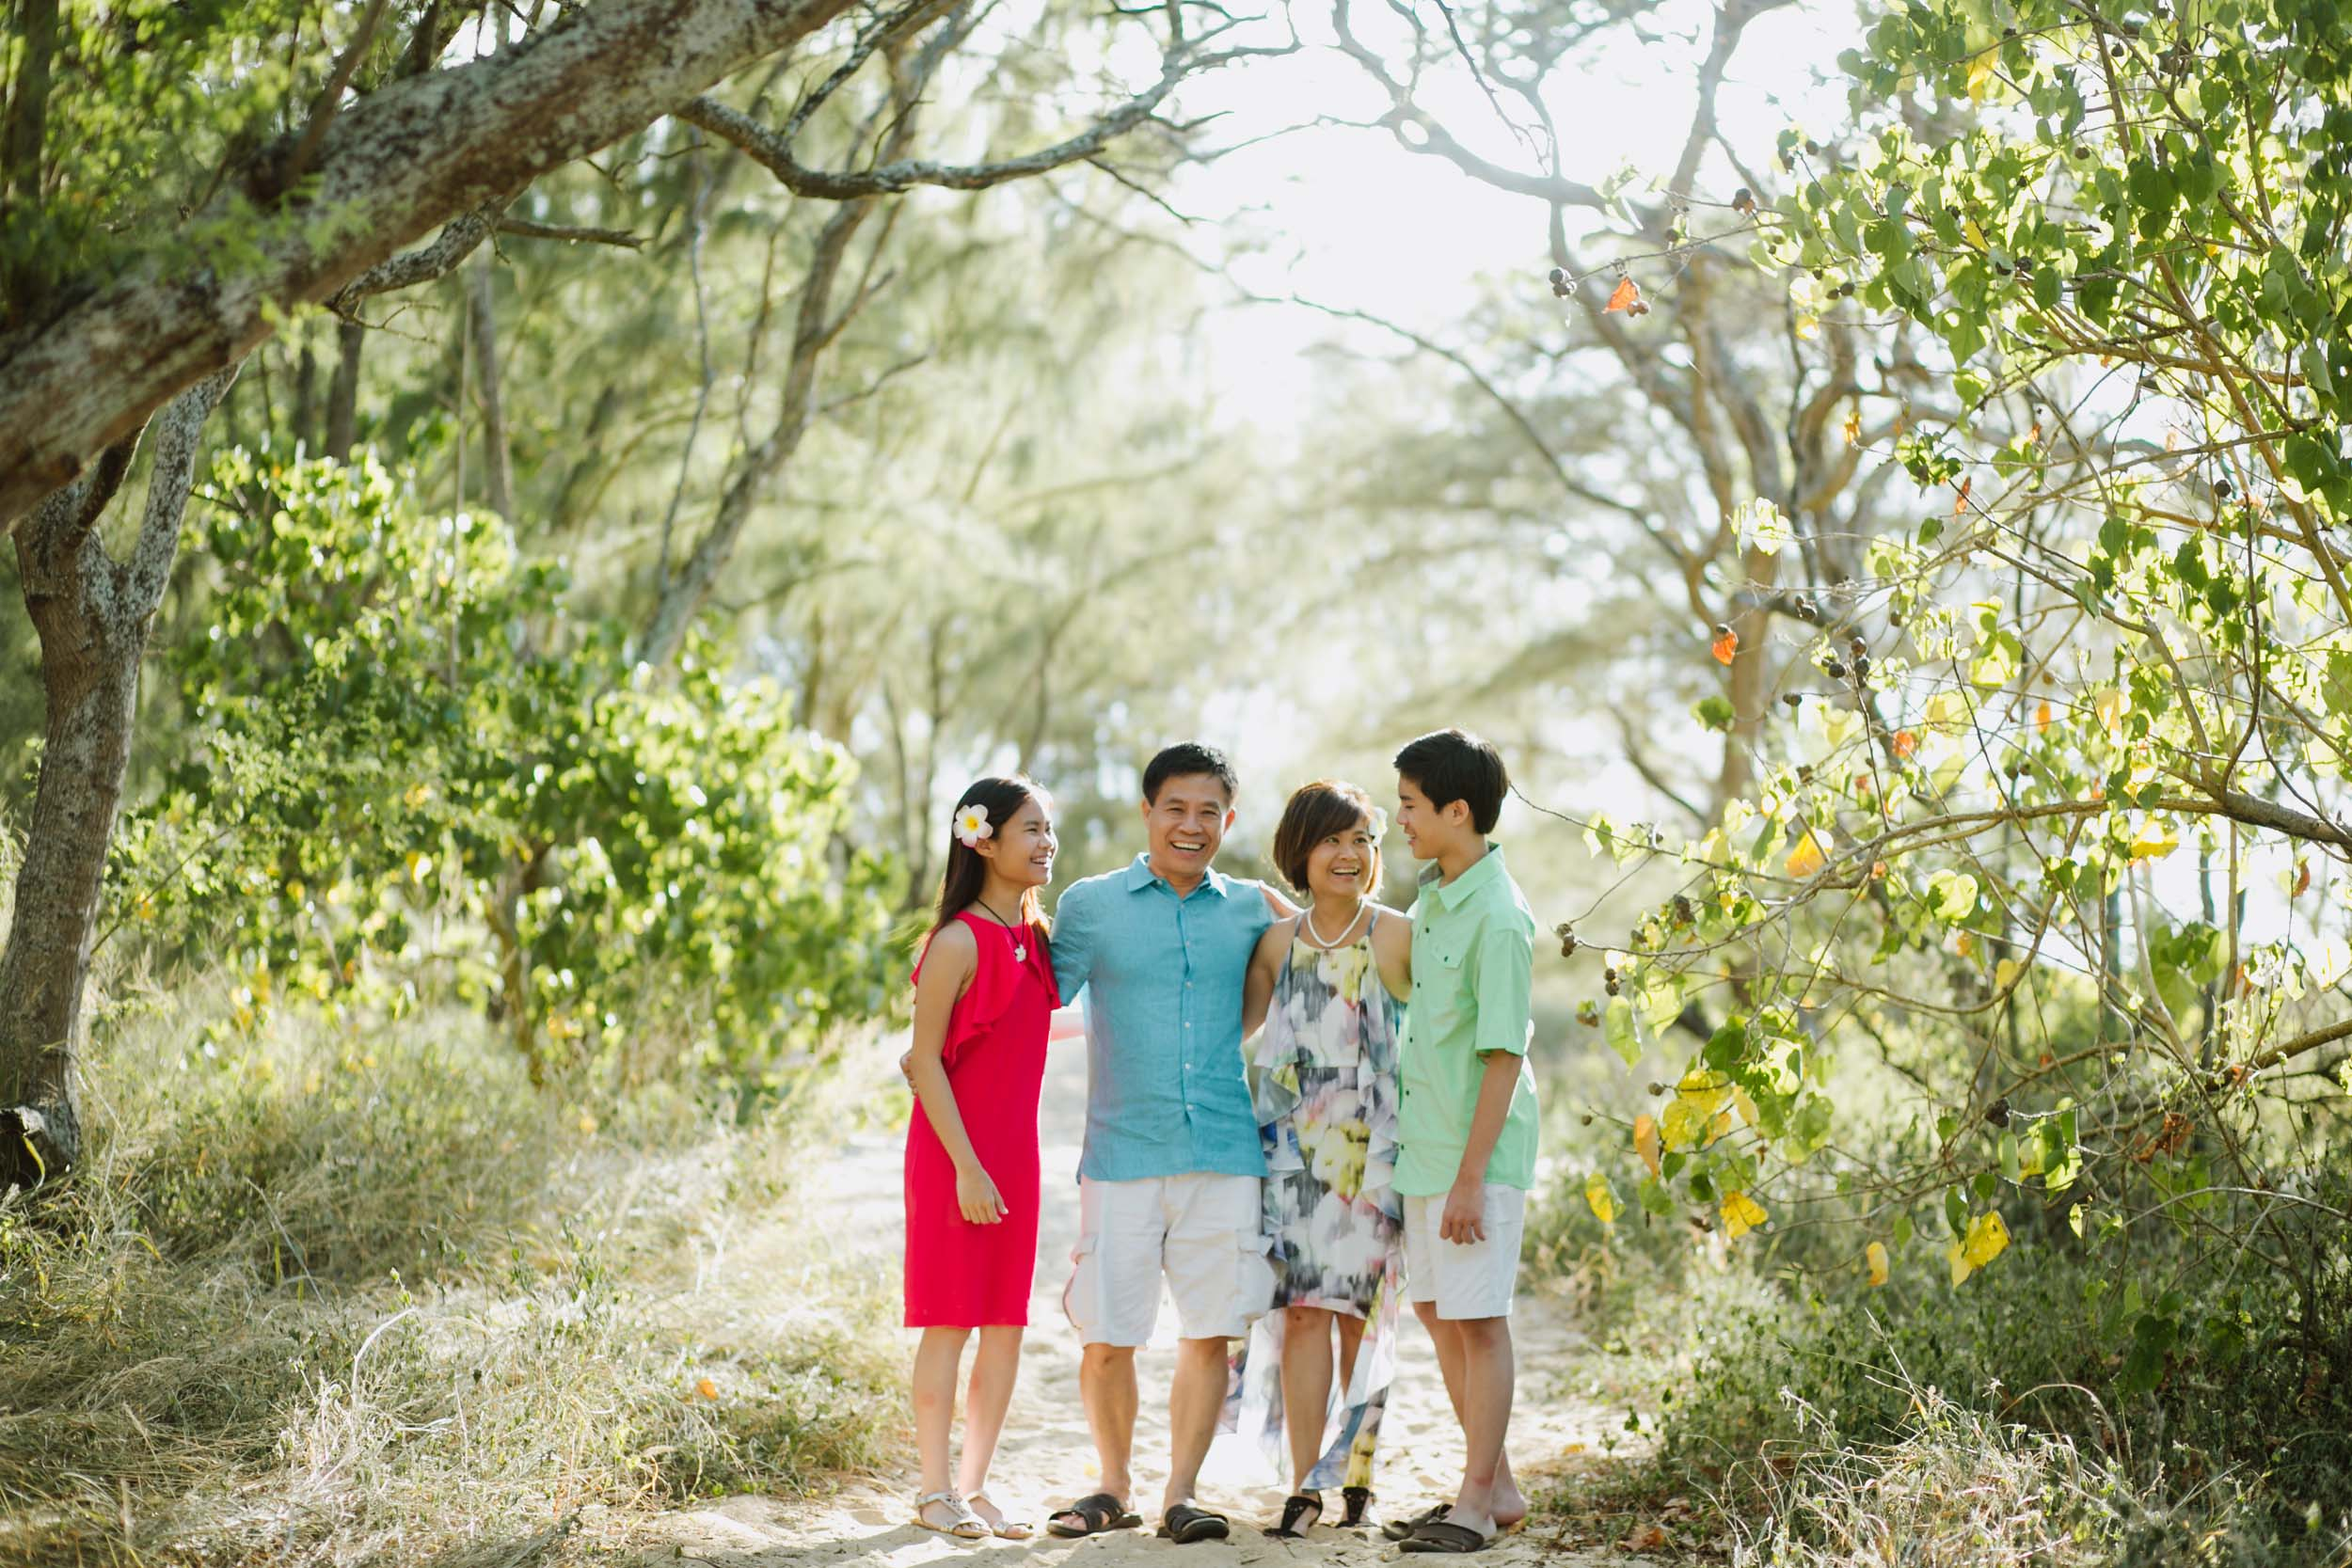 Family standing together along a sandy pathway surrounded by bright green foliage in Maui, USA